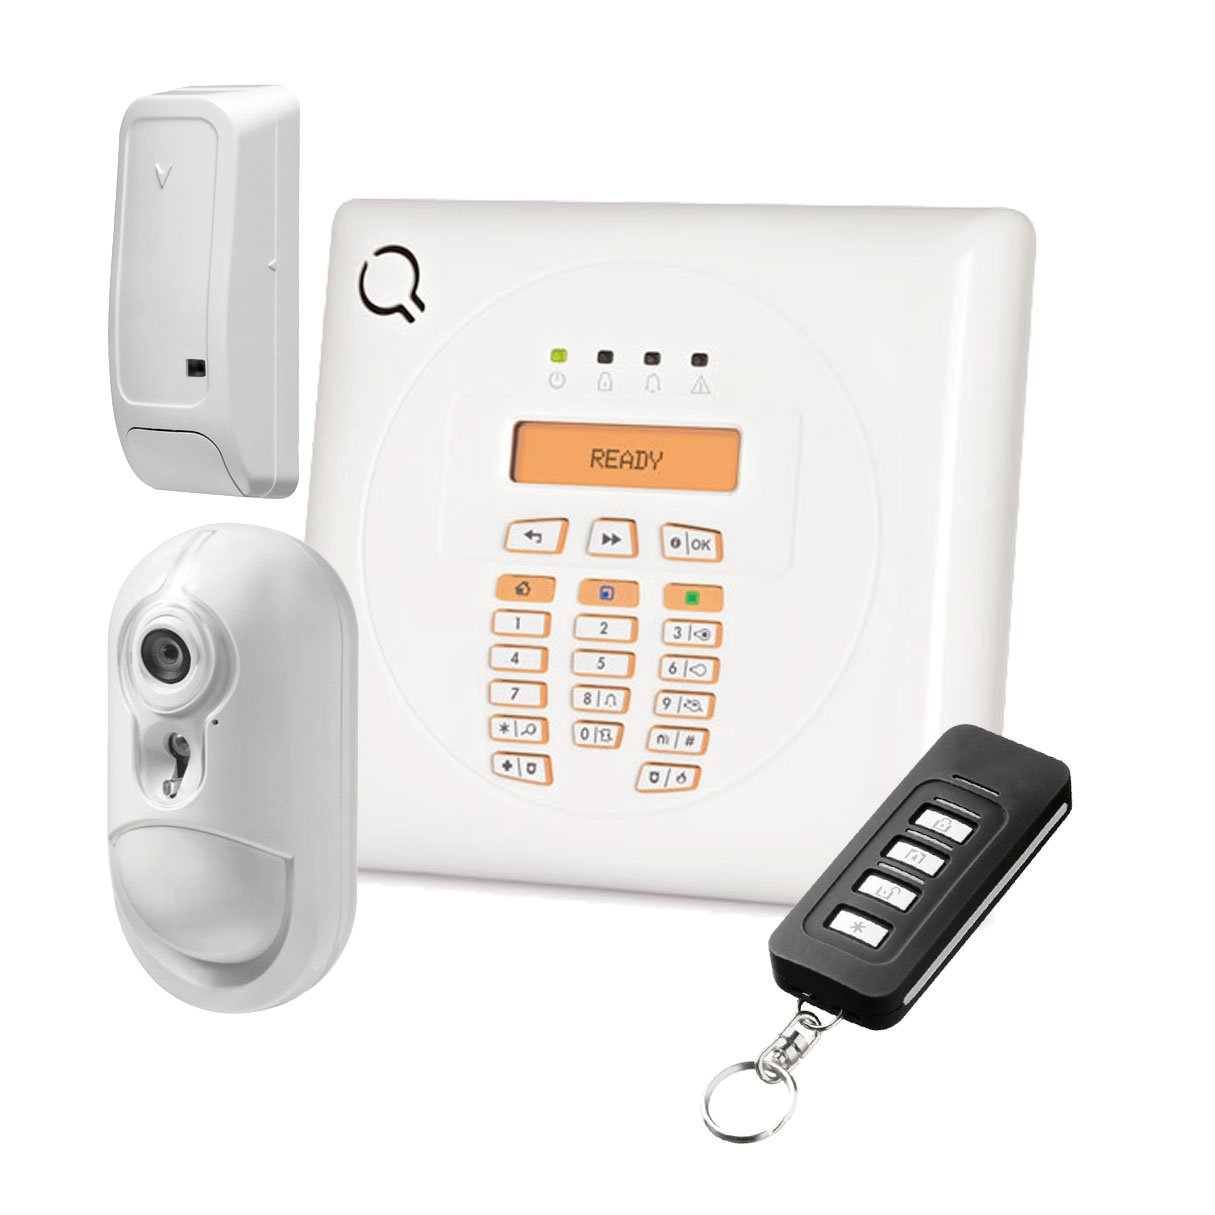 Kit de alarma Wireless A 30 zonas con central DSC wp8010 ...